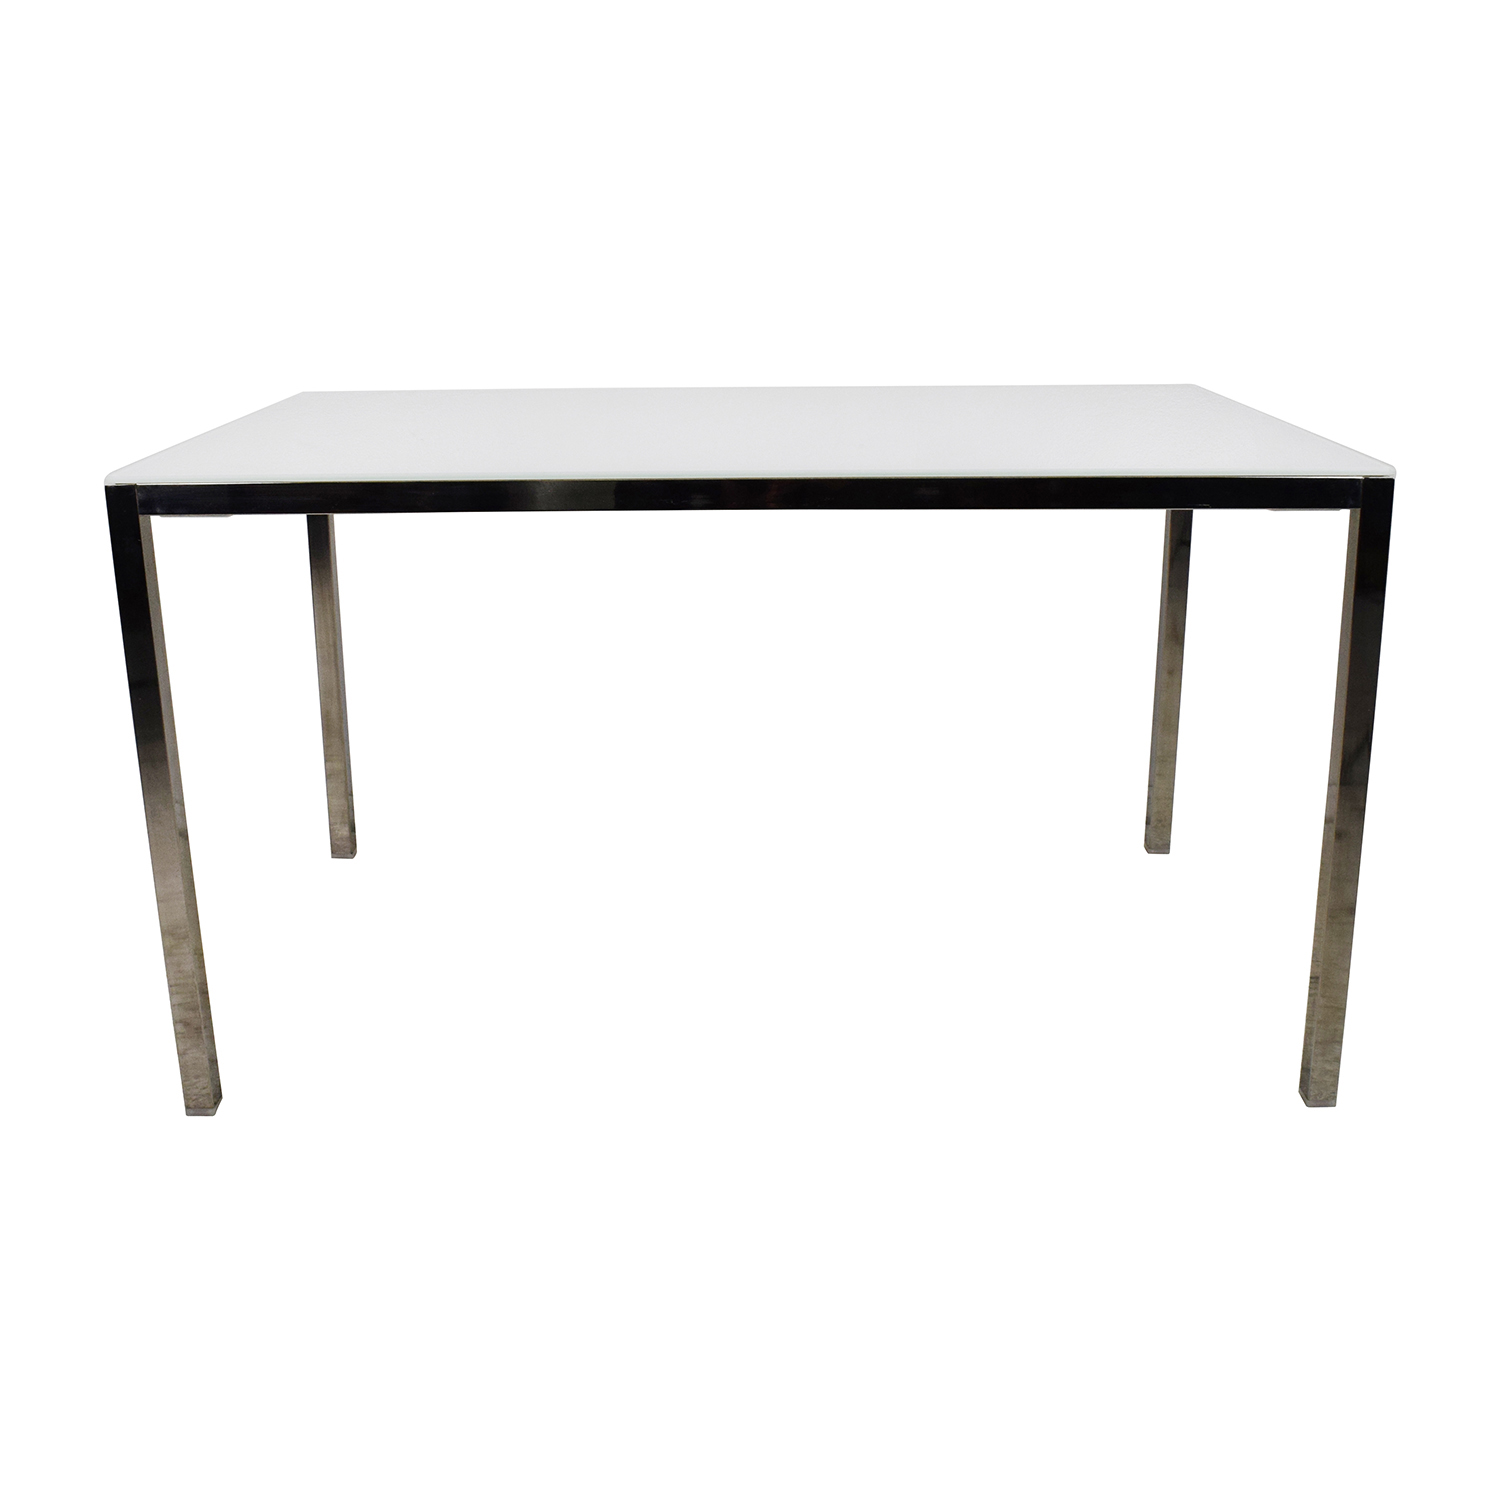 ikea glass dining table 85% OFF   IKEA IKEA Torsby Large Glass Top Dining Table / Tables ikea glass dining table